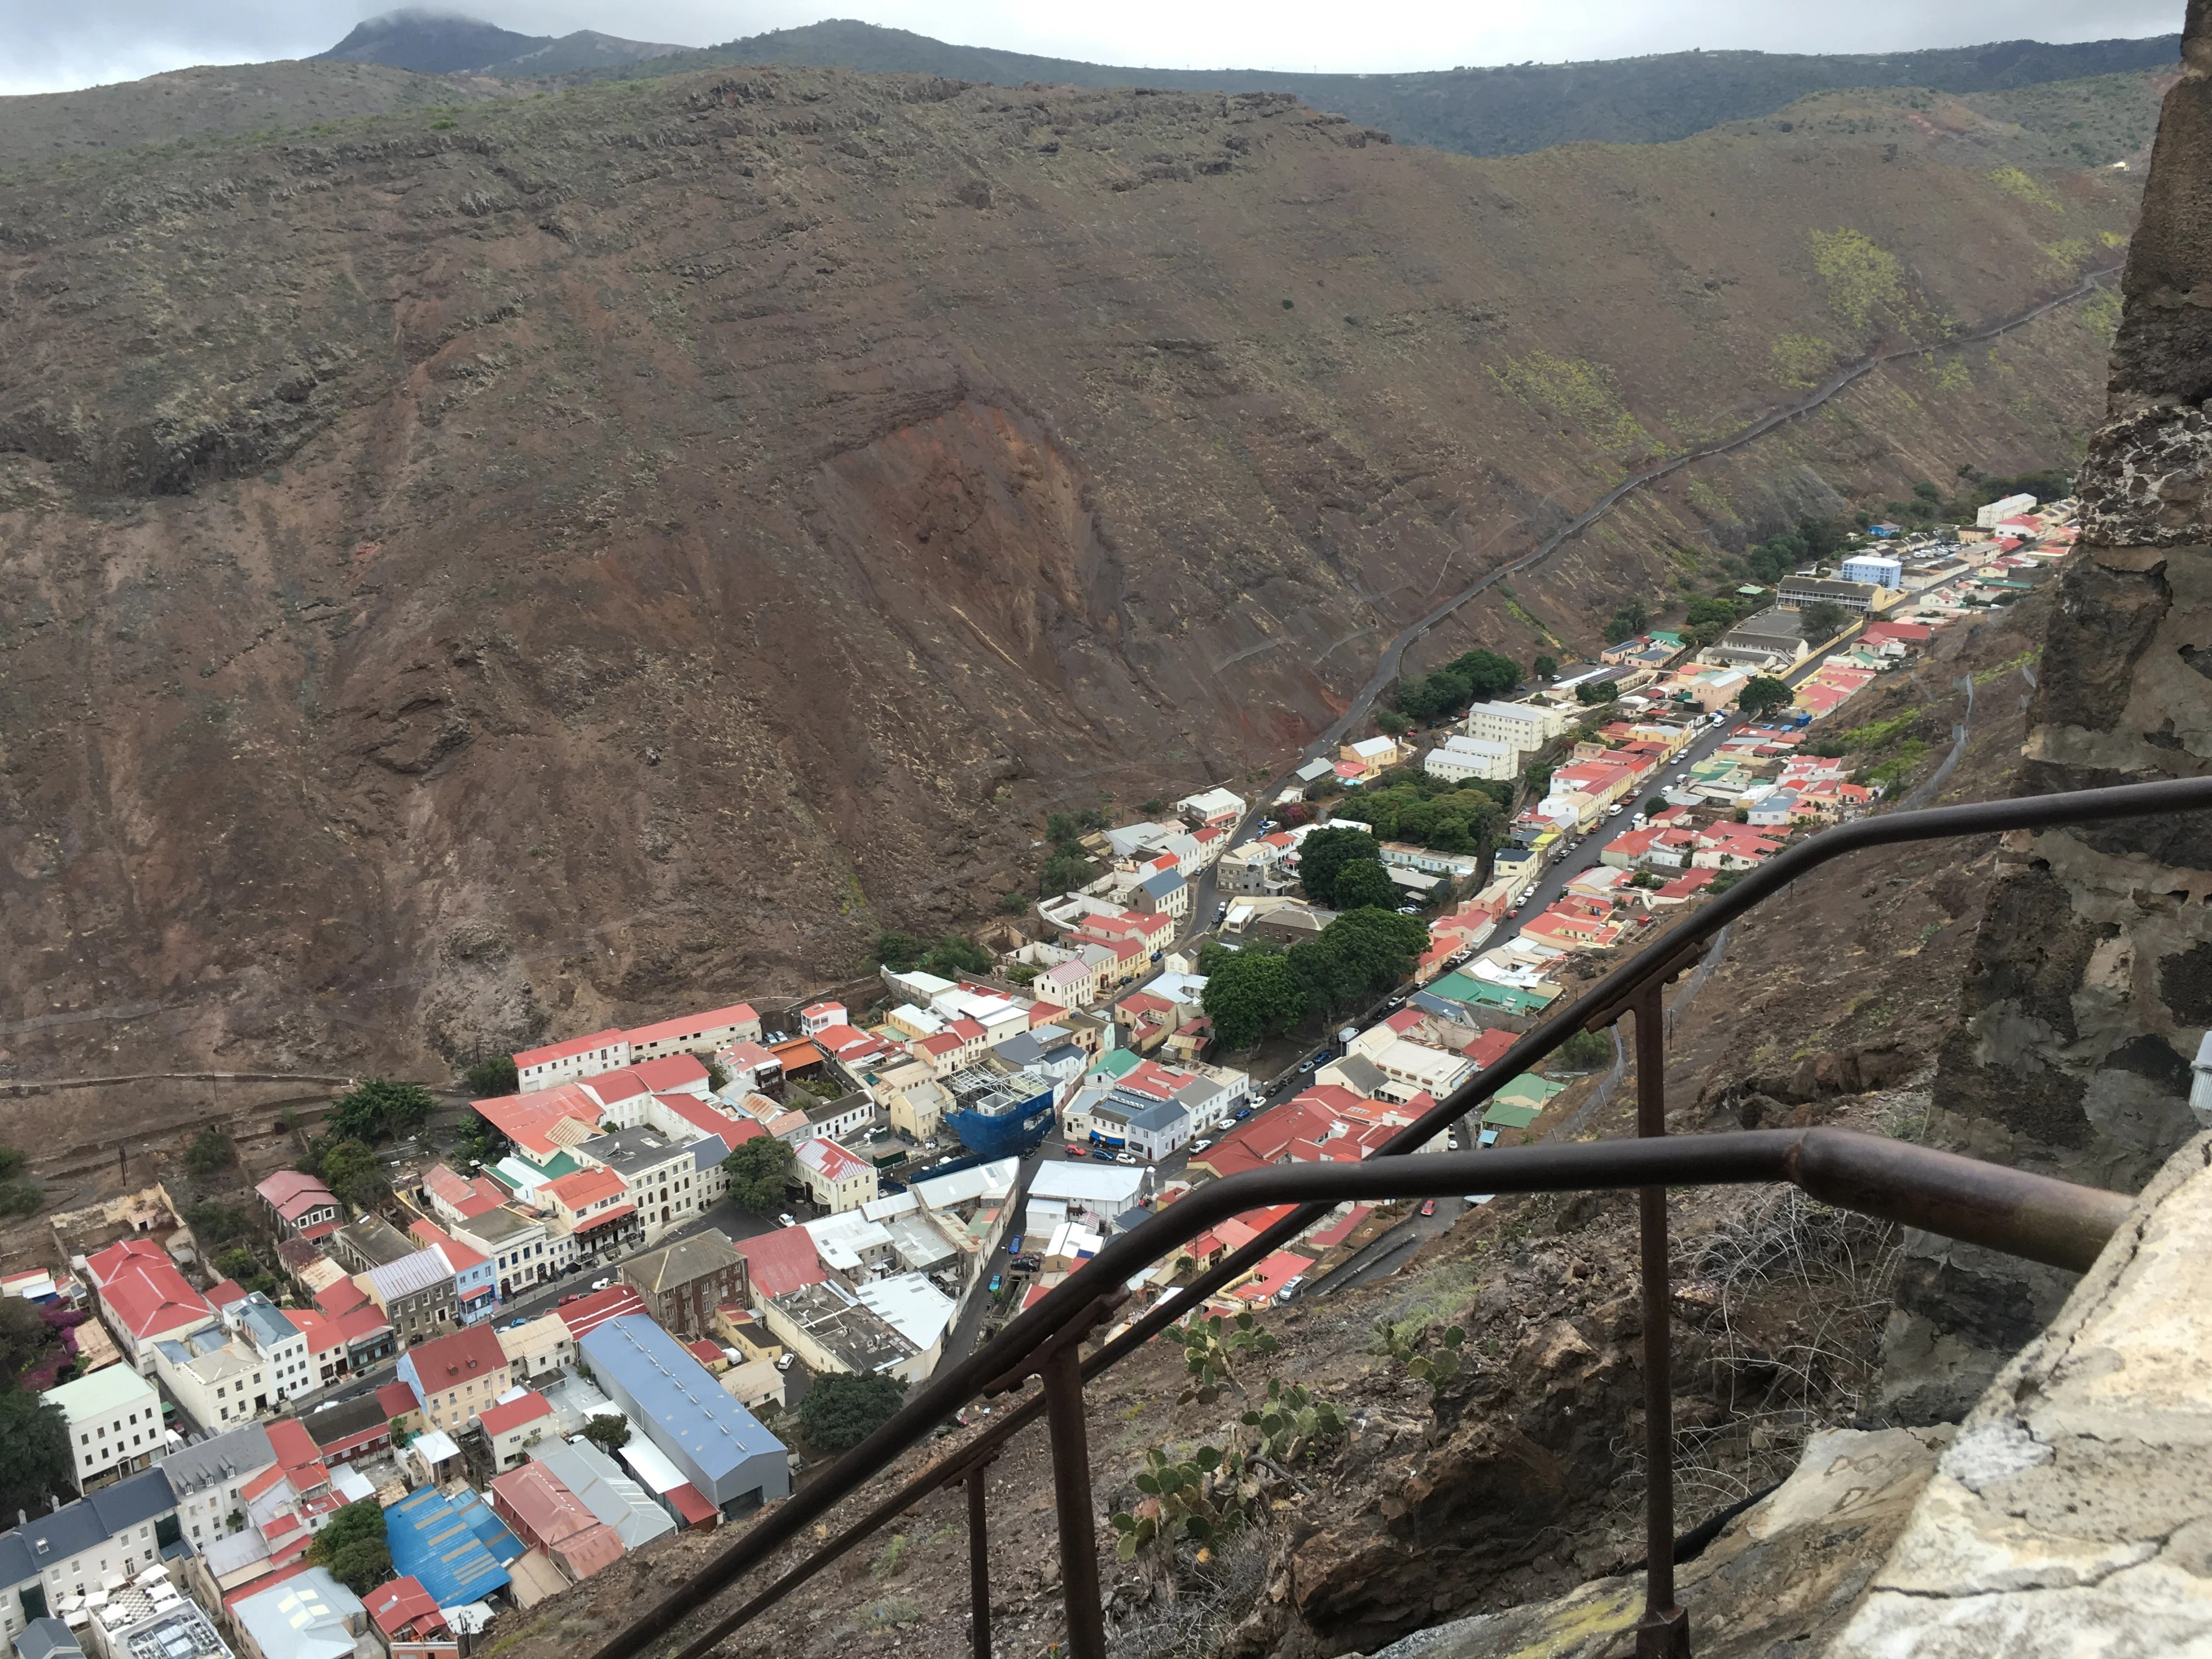 Miles Away: Visiting St. Helena, One of the Most Remote Islands in the World